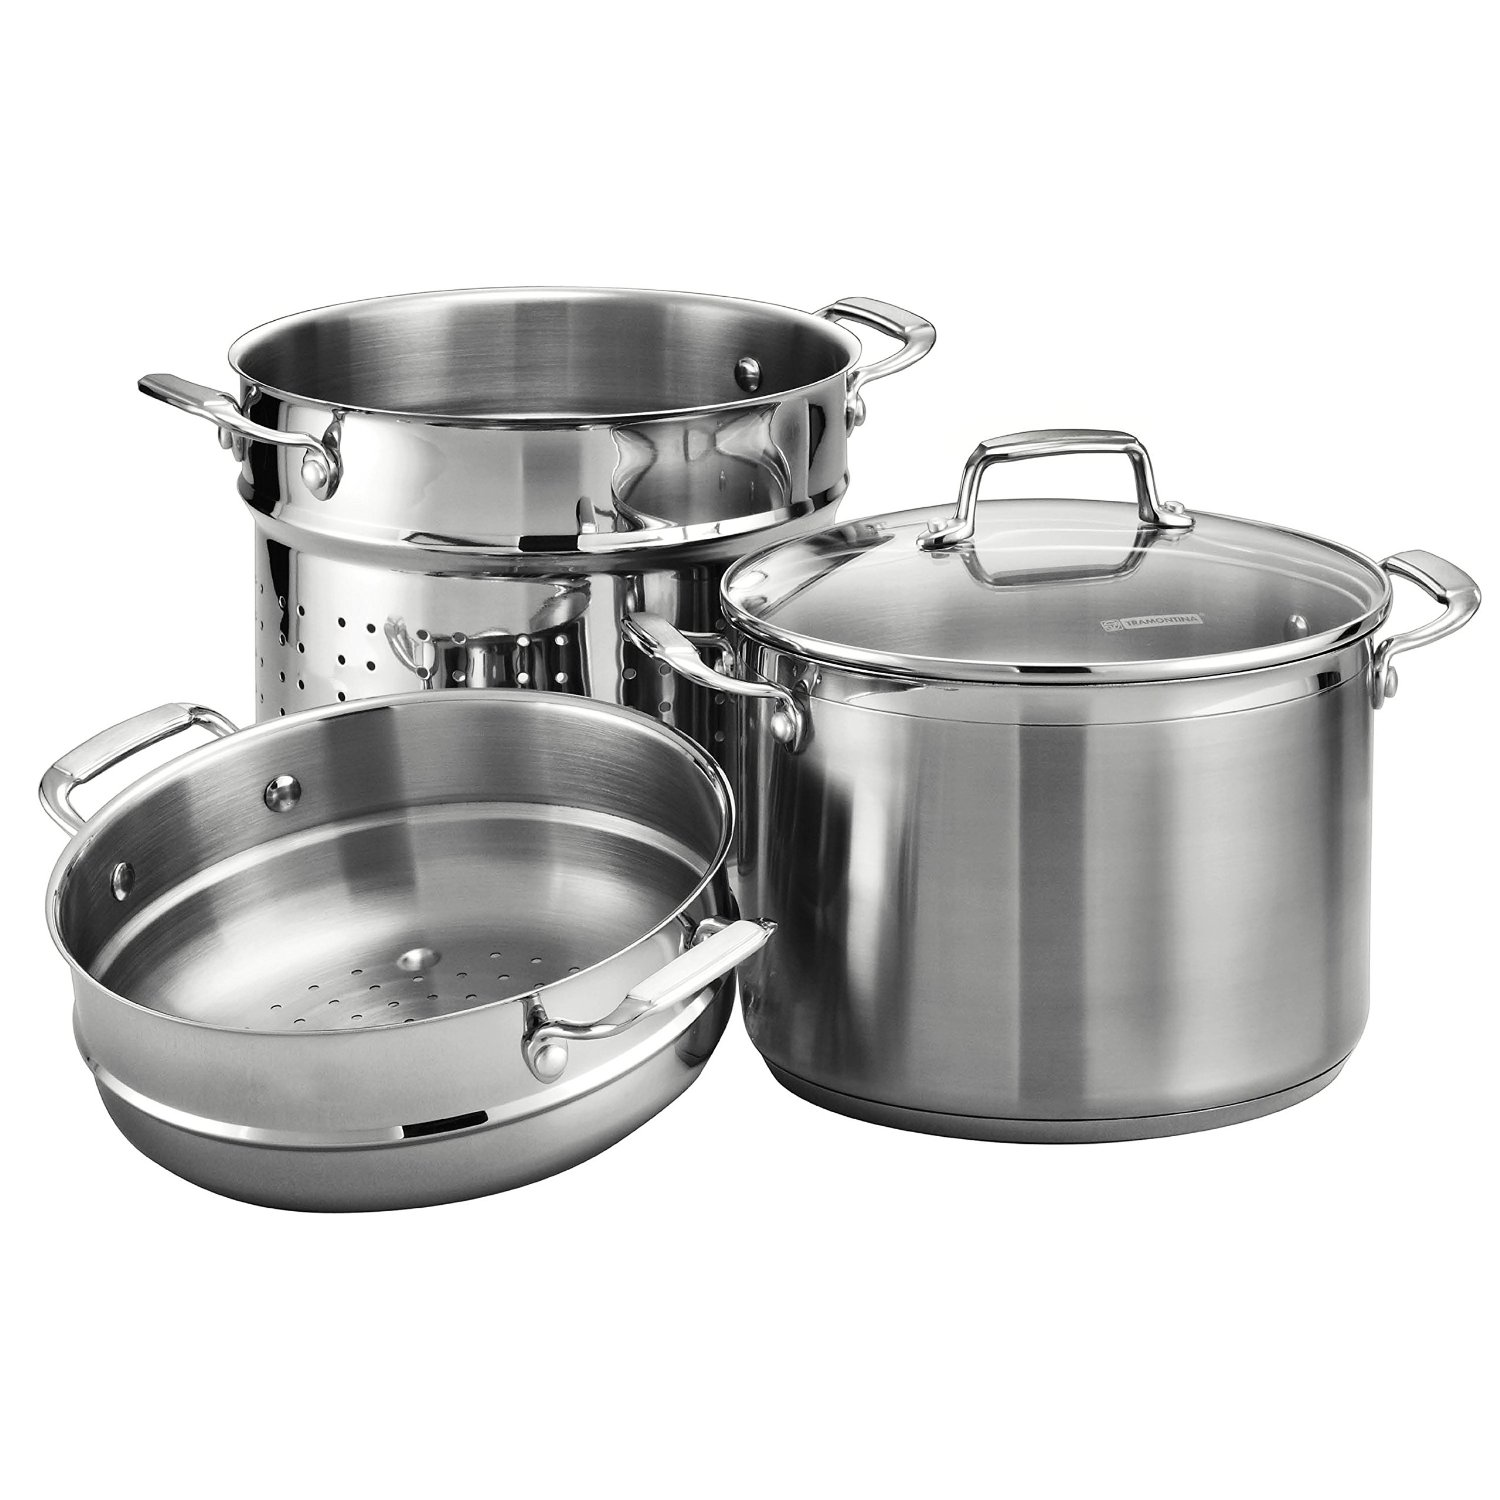 Tramontina 8 Quart Stainless Steel Pasta Pot Cooker